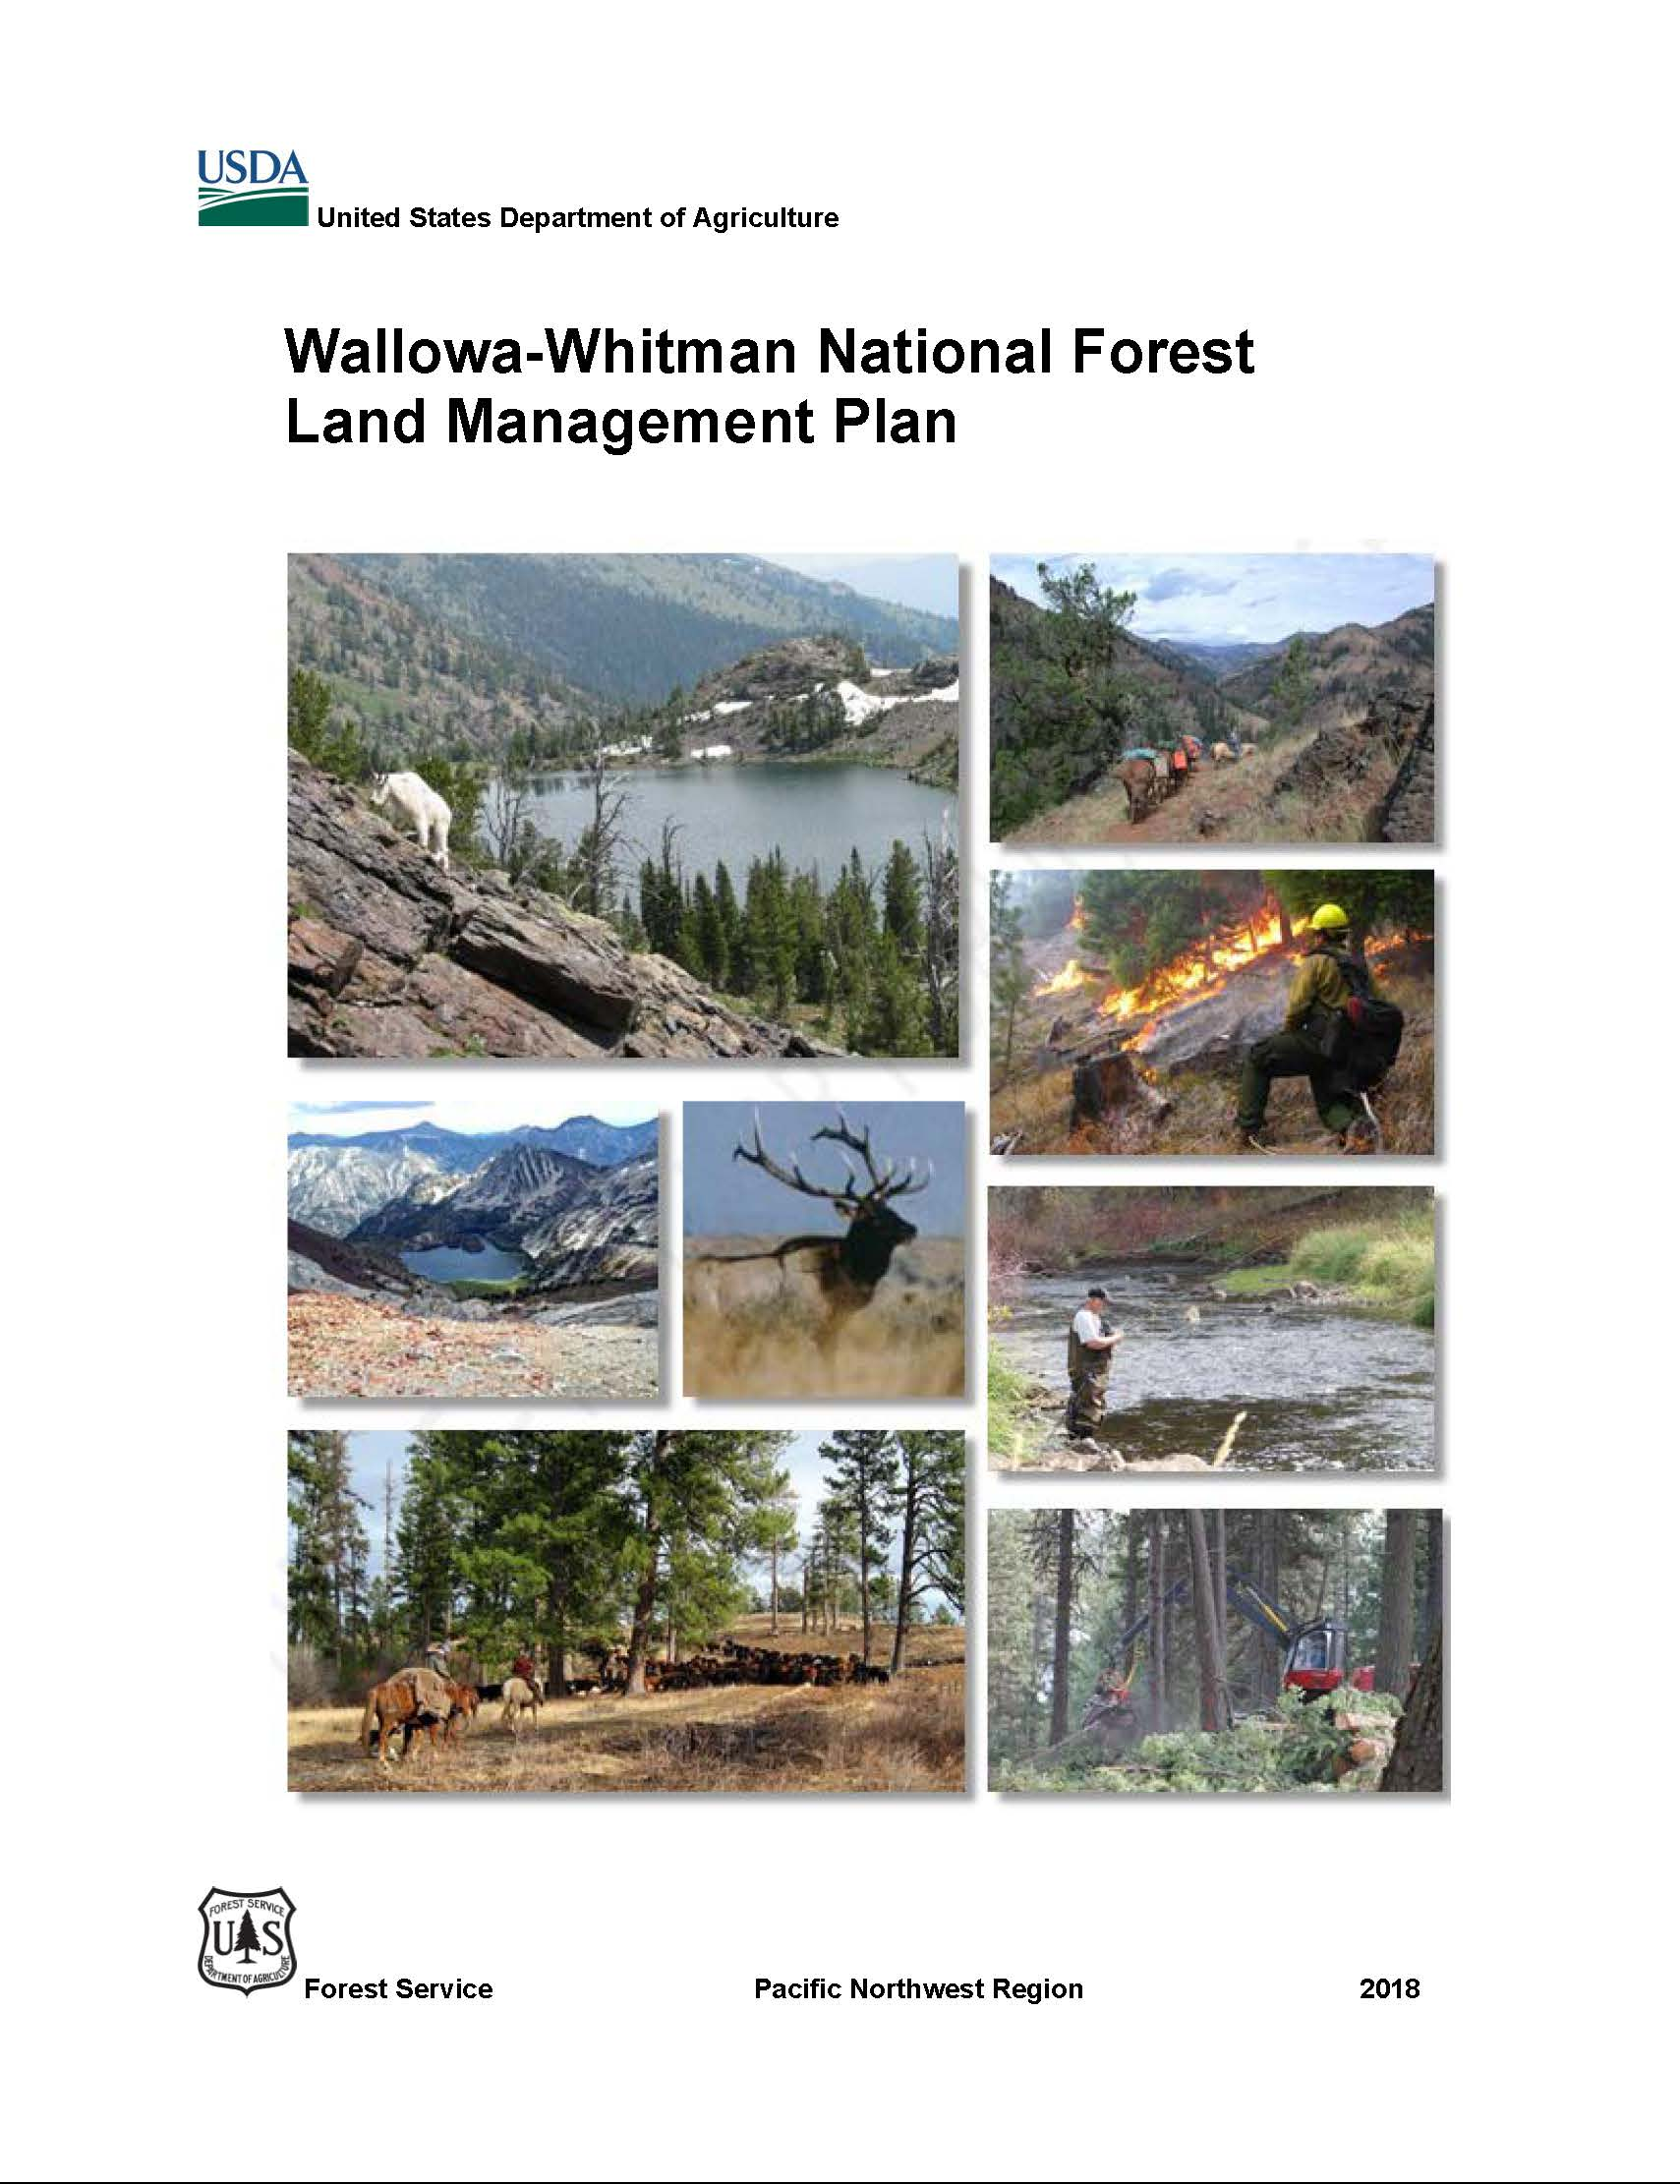 Wallowa-Whitman LMP Cover Art